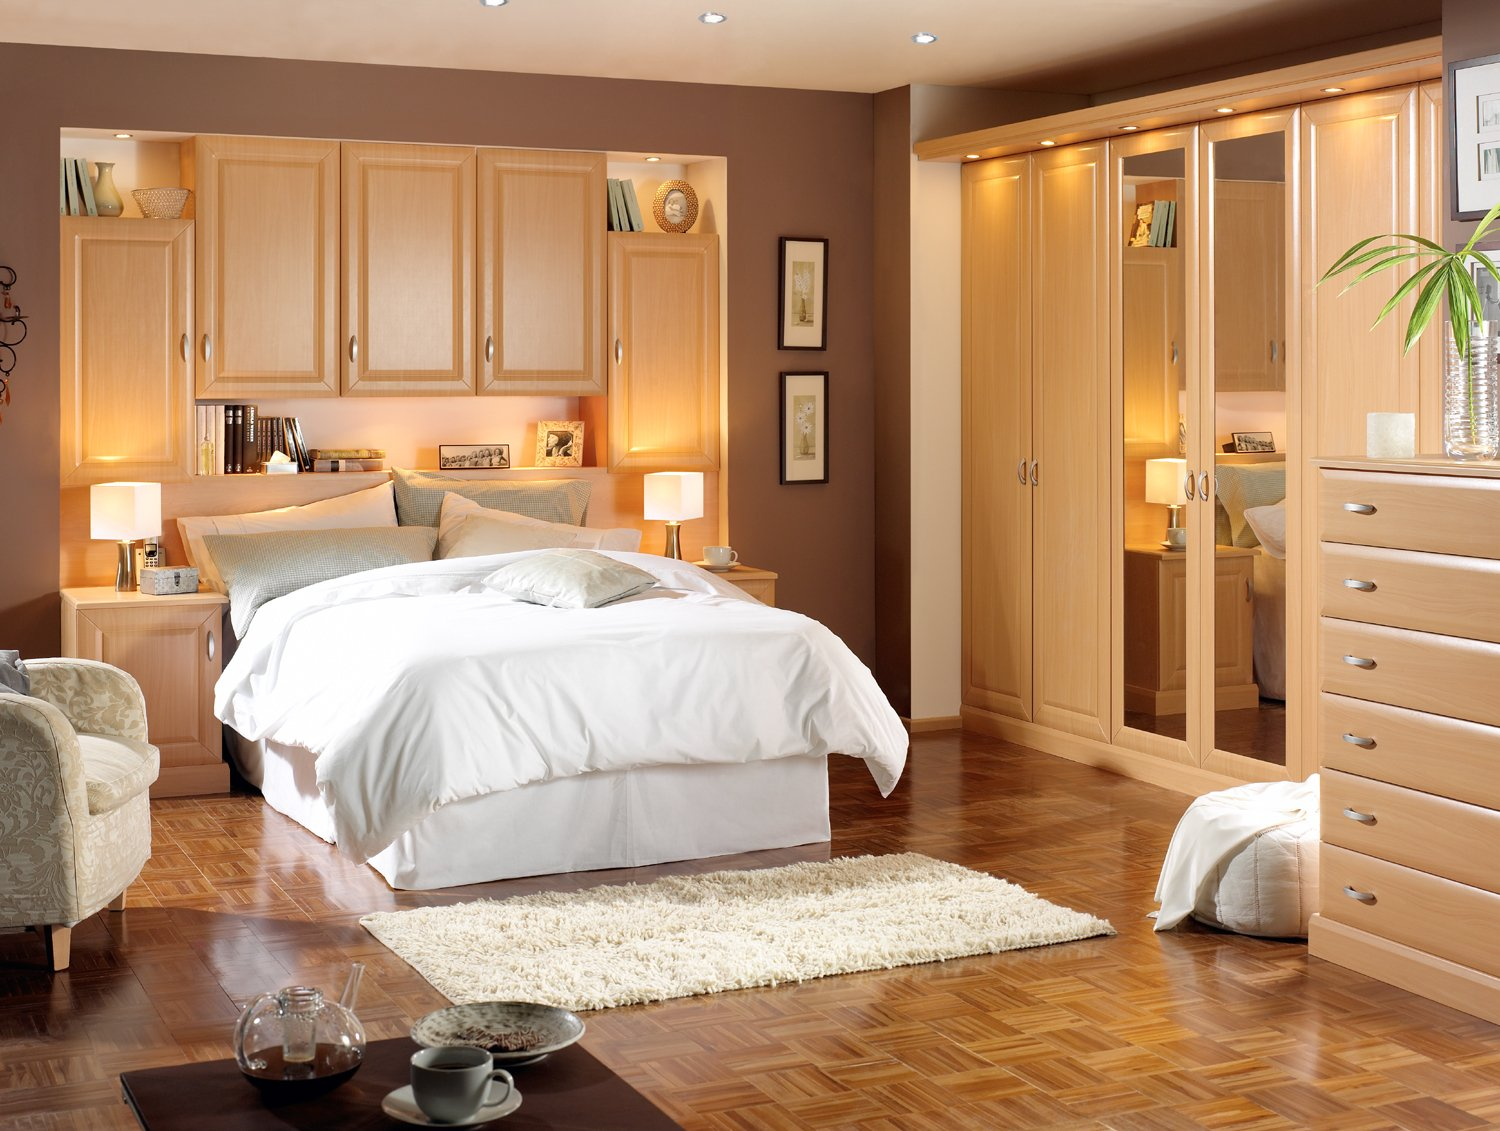 Bedrooms cupboard designs pictures an interior design for Designs of master bedroom